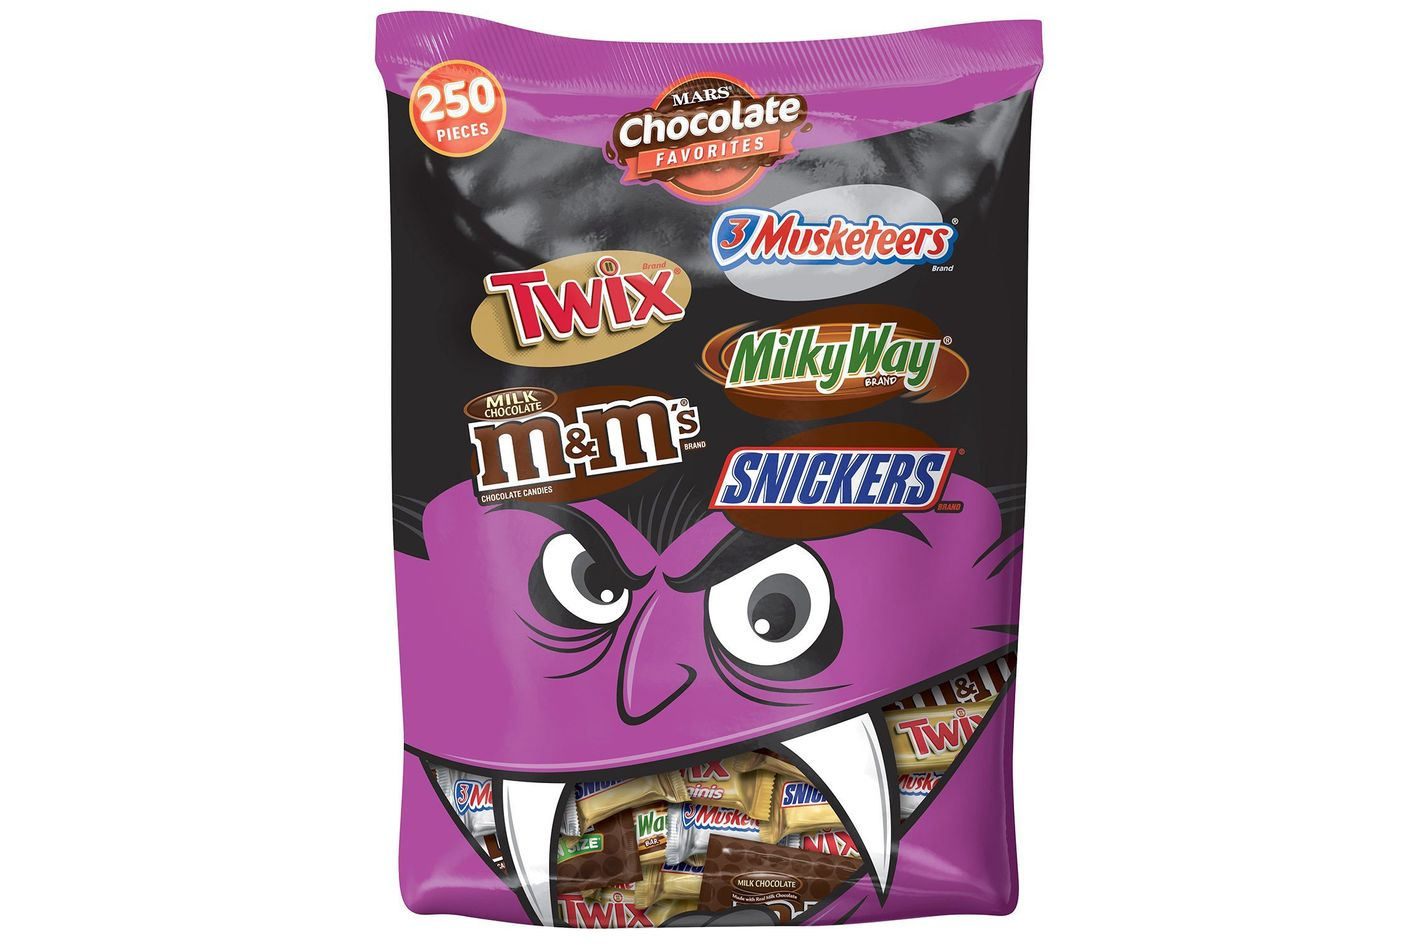 Mars Chocolate Favorites Halloween Candy Bars Variety Mix, 250-Piece Bag